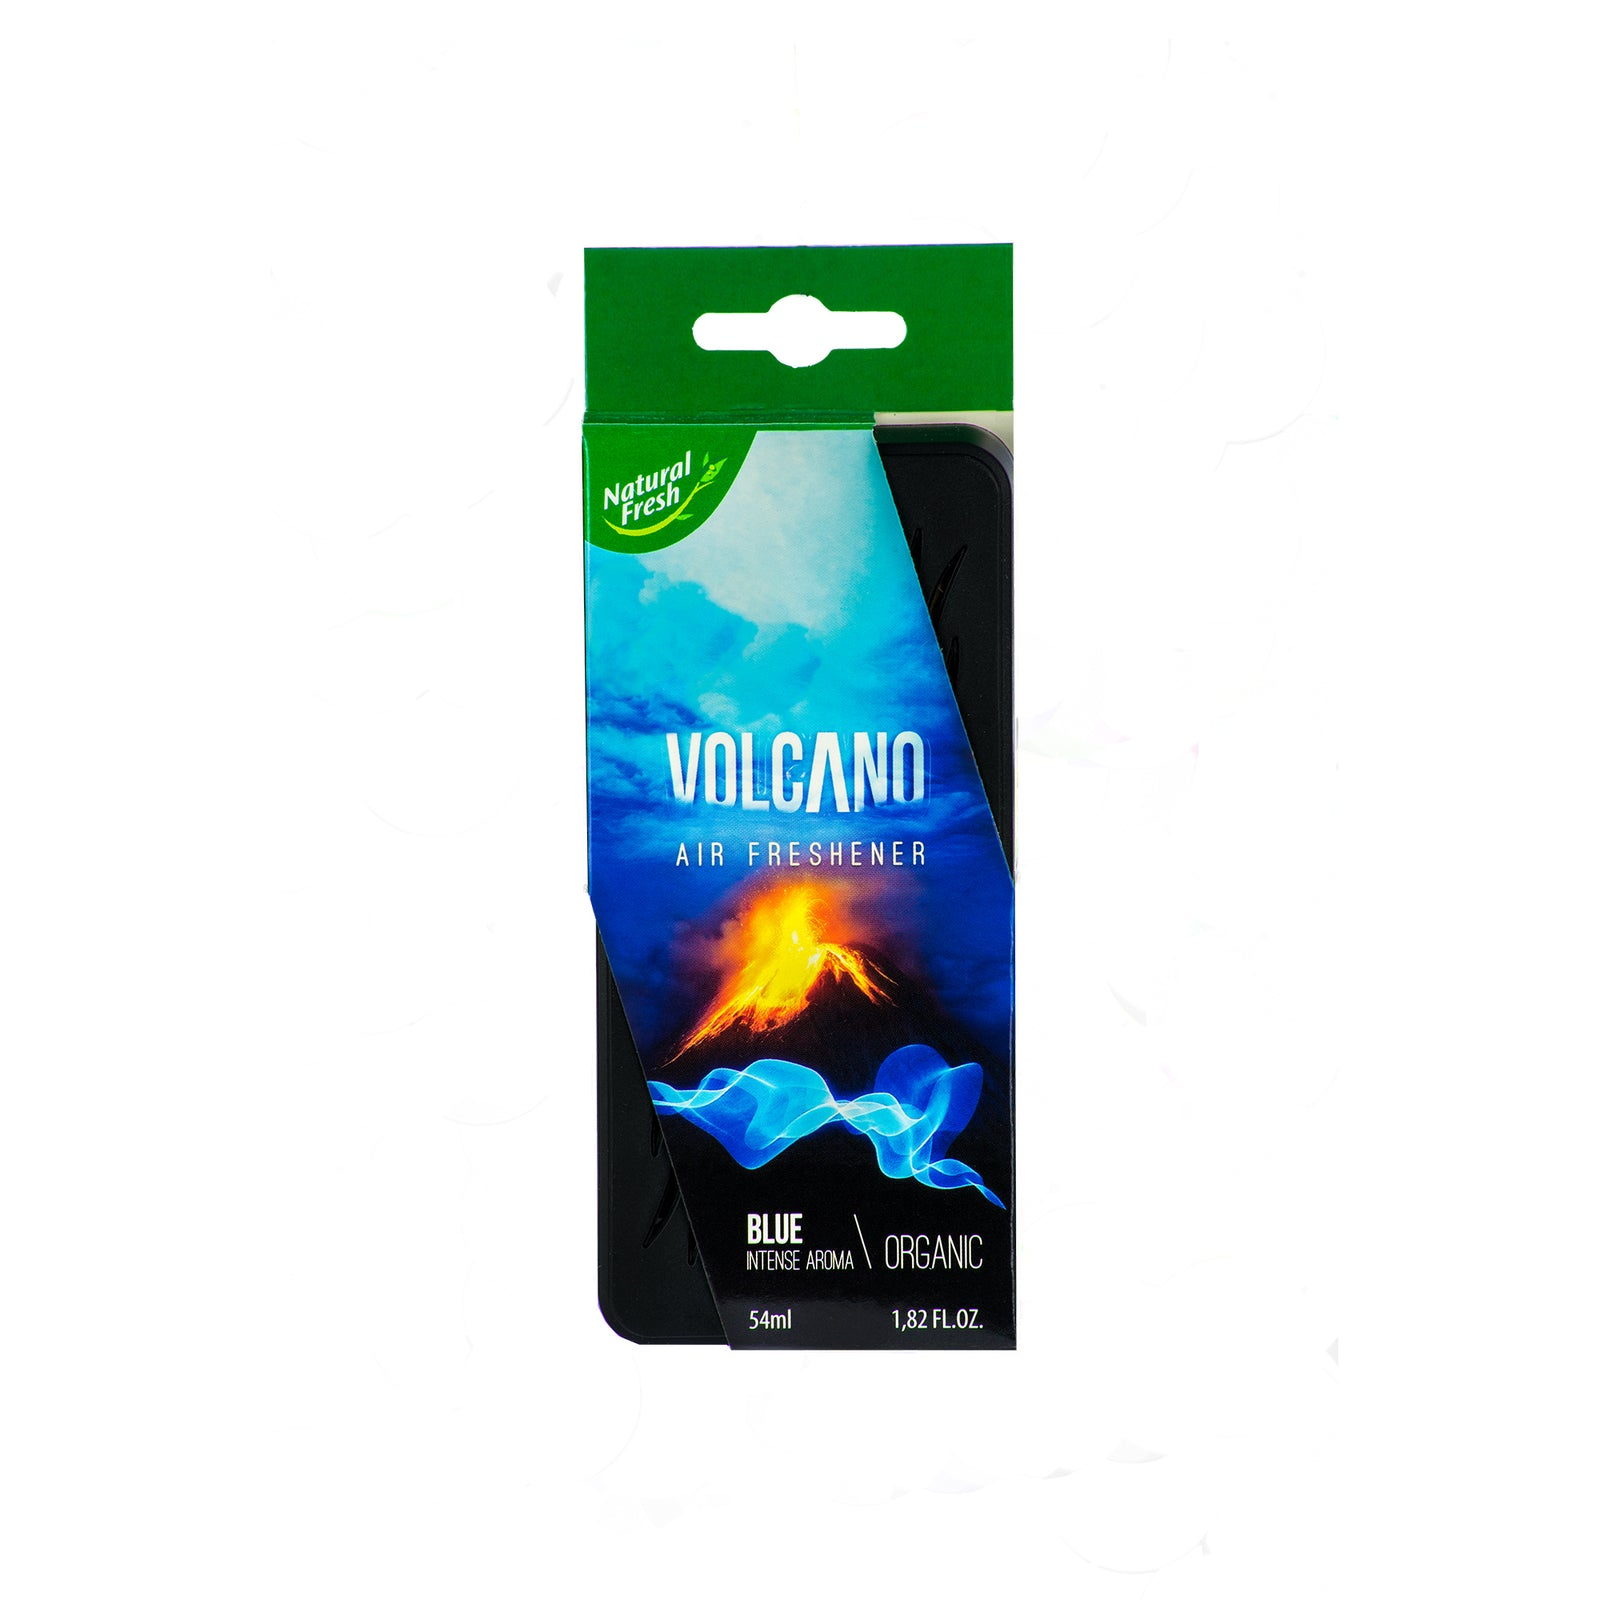 Natural Fresh Volcano Organic Blue Standing